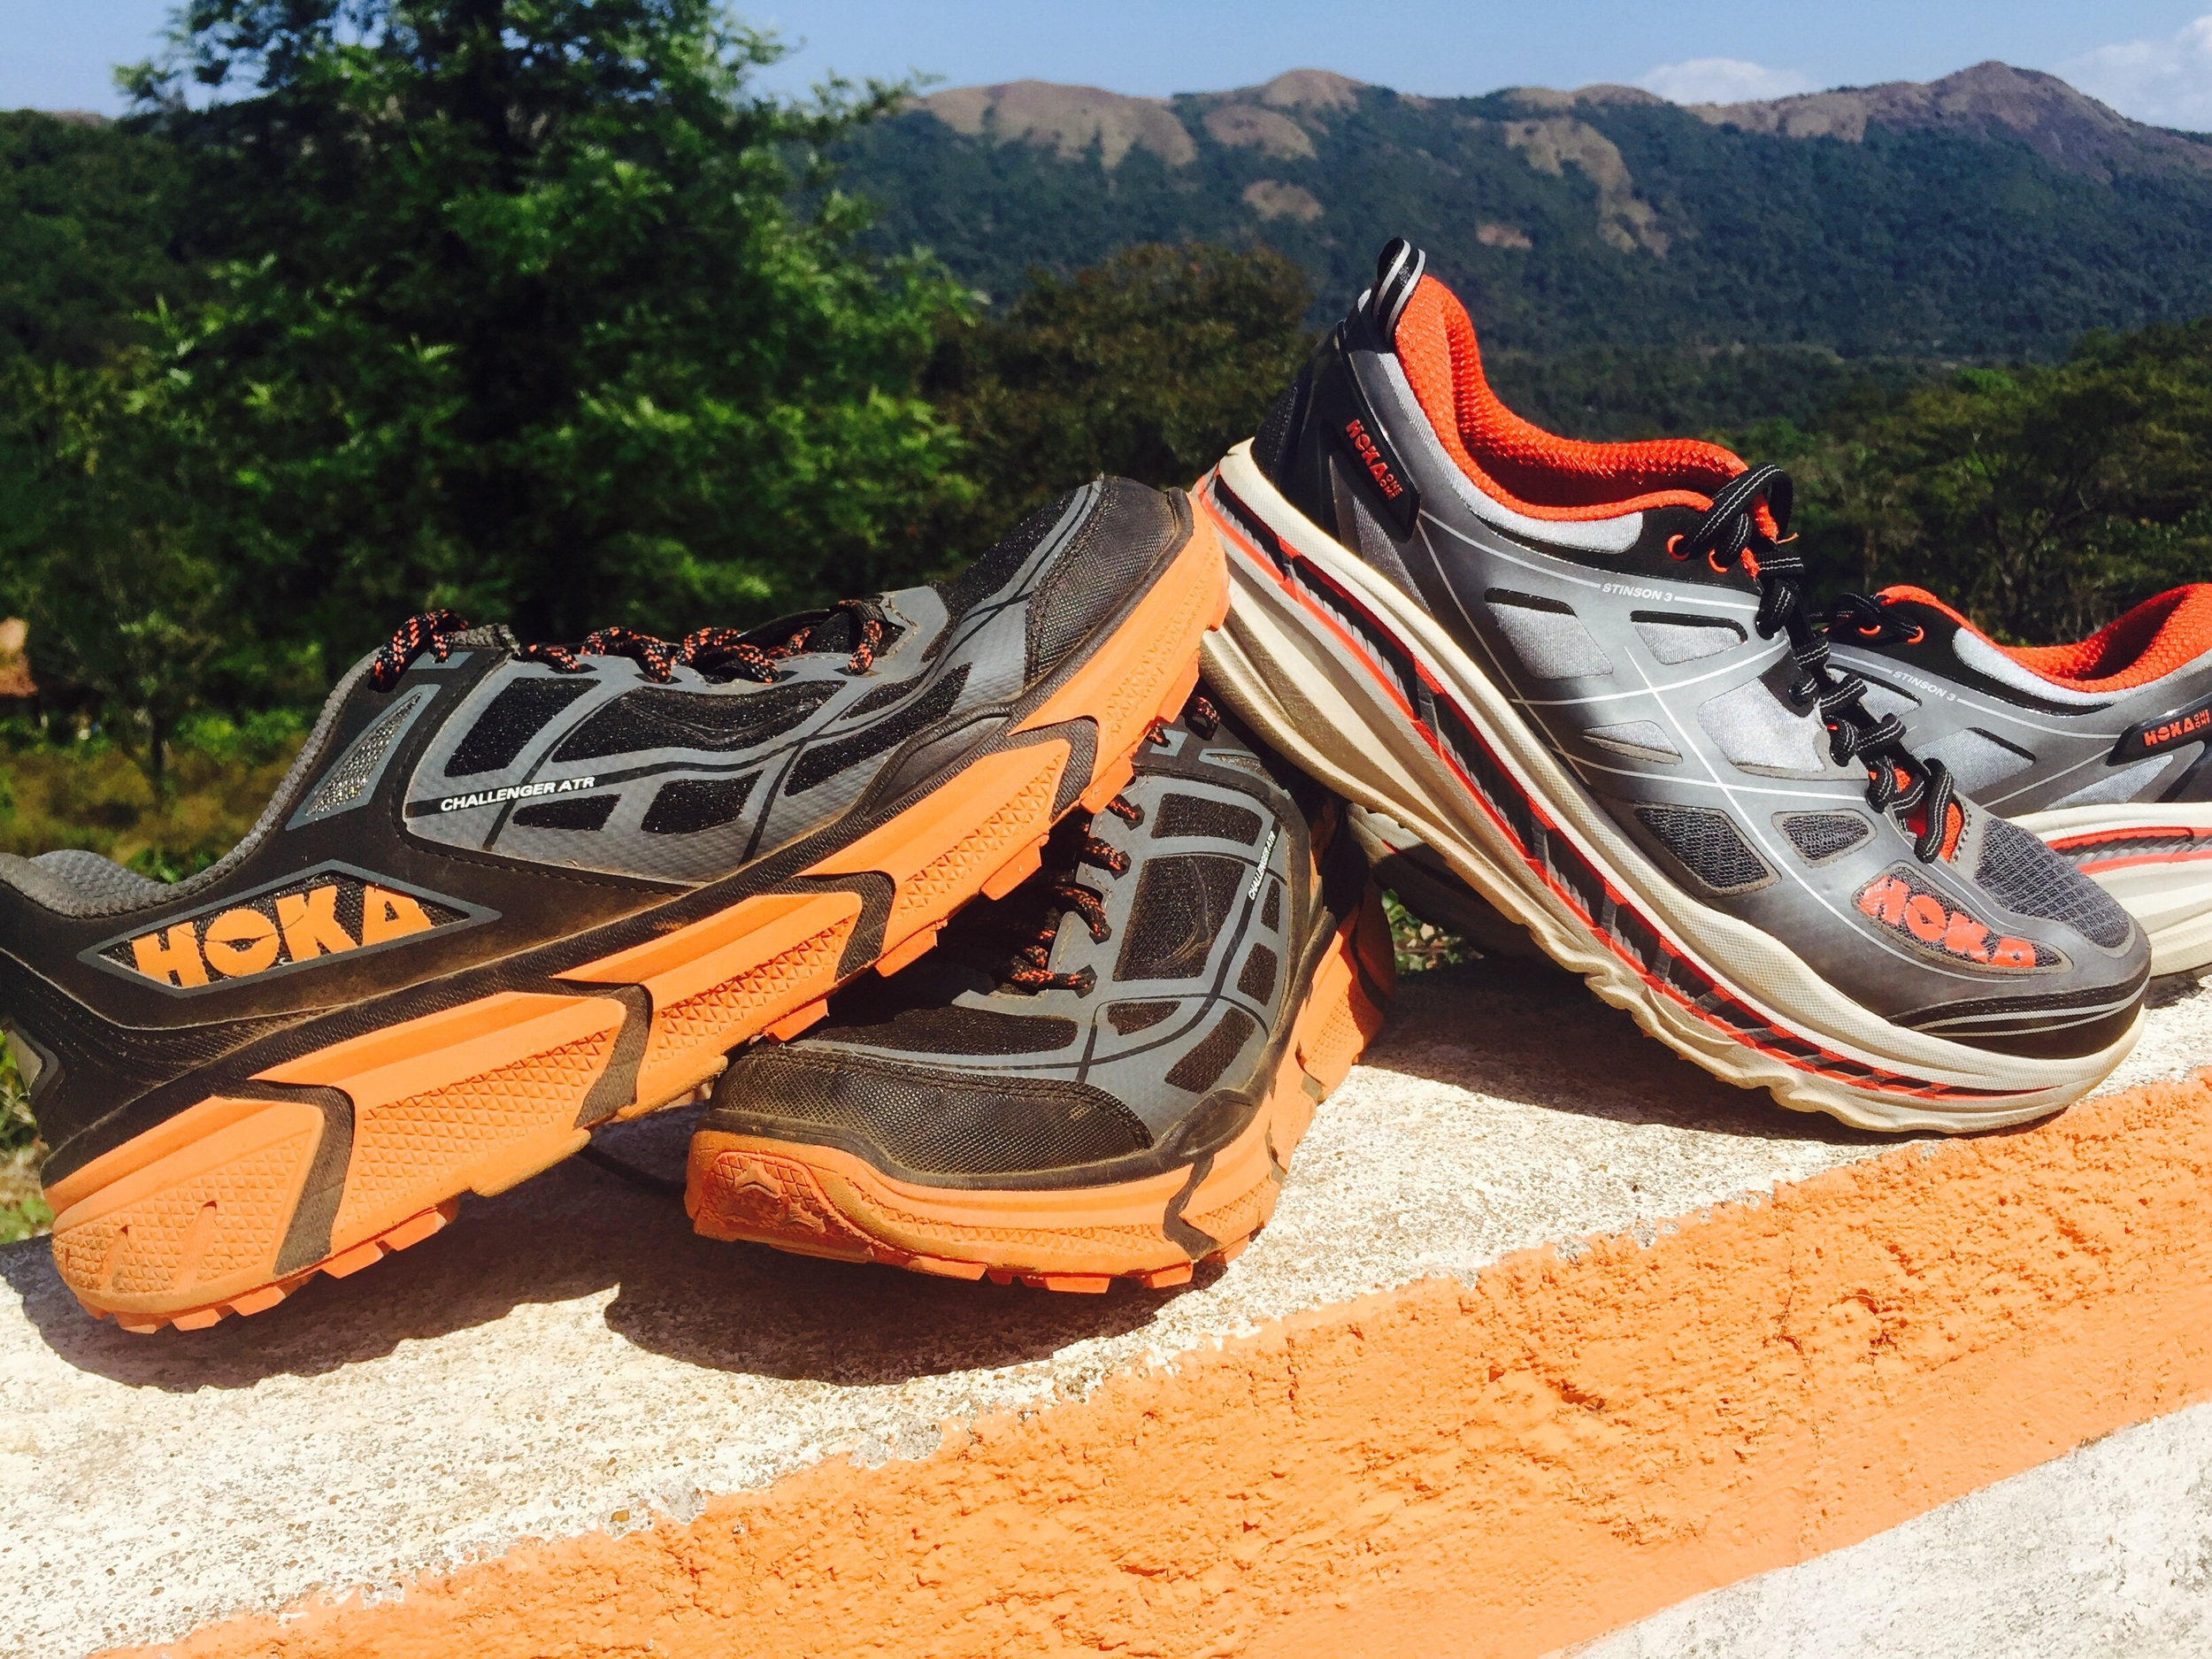 Hoka One One - I went with the Challenger and Stinson ATR